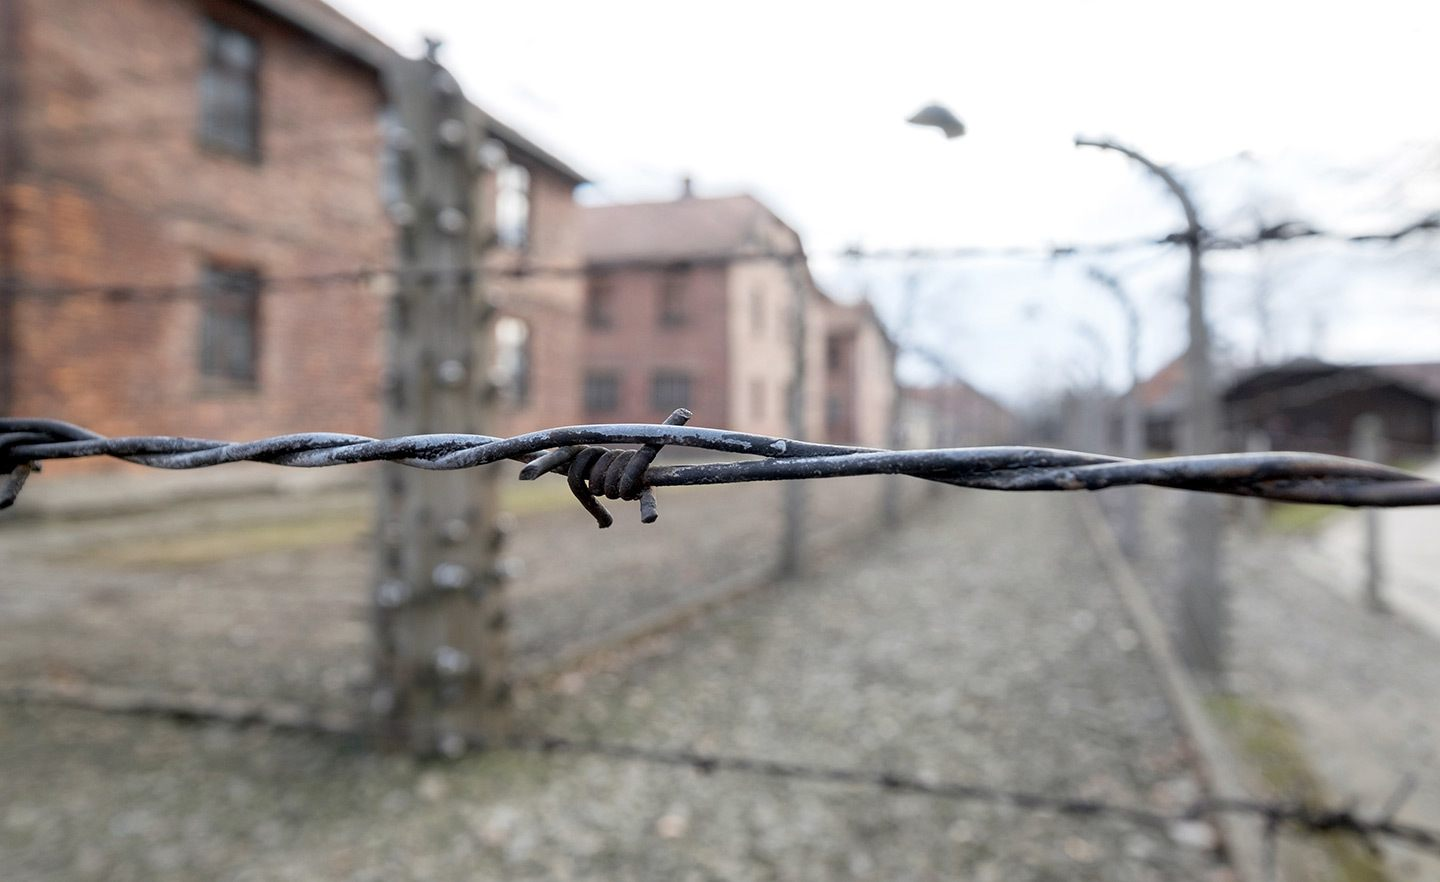 Barbed wire at Auschwitz-Birkenau, Poland